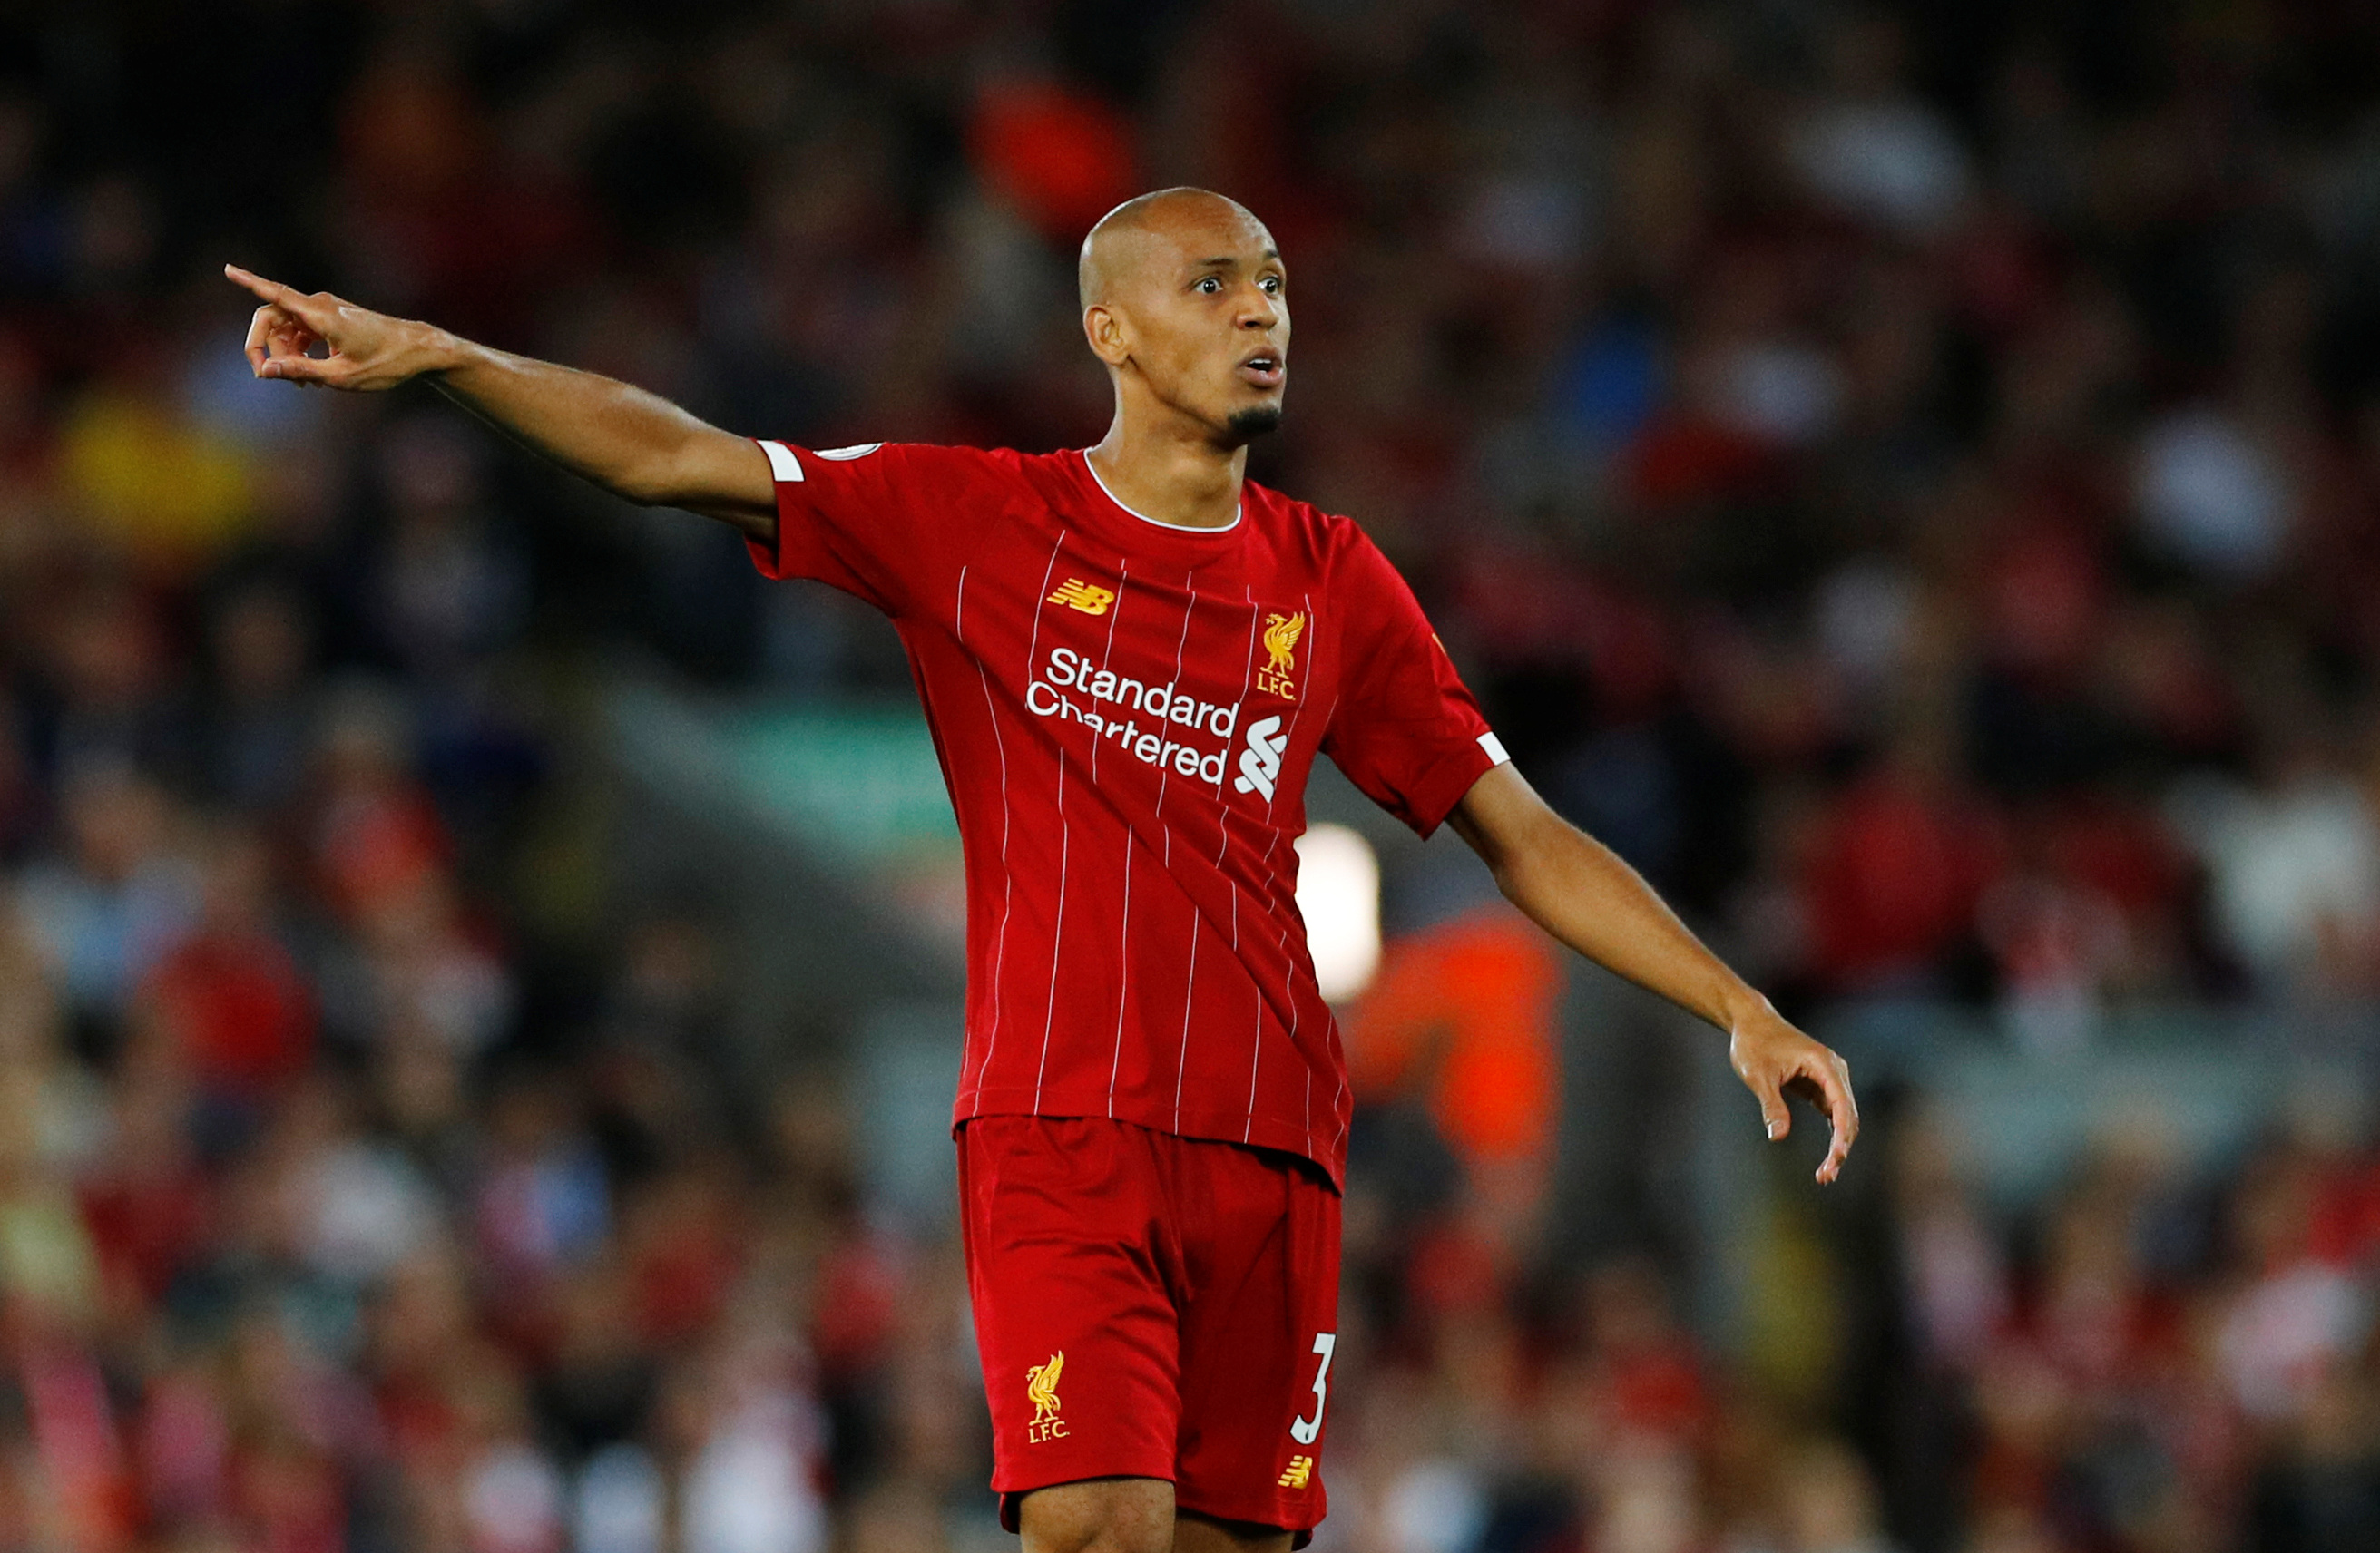 Liverpool star targets improving on last season's 97-point haul